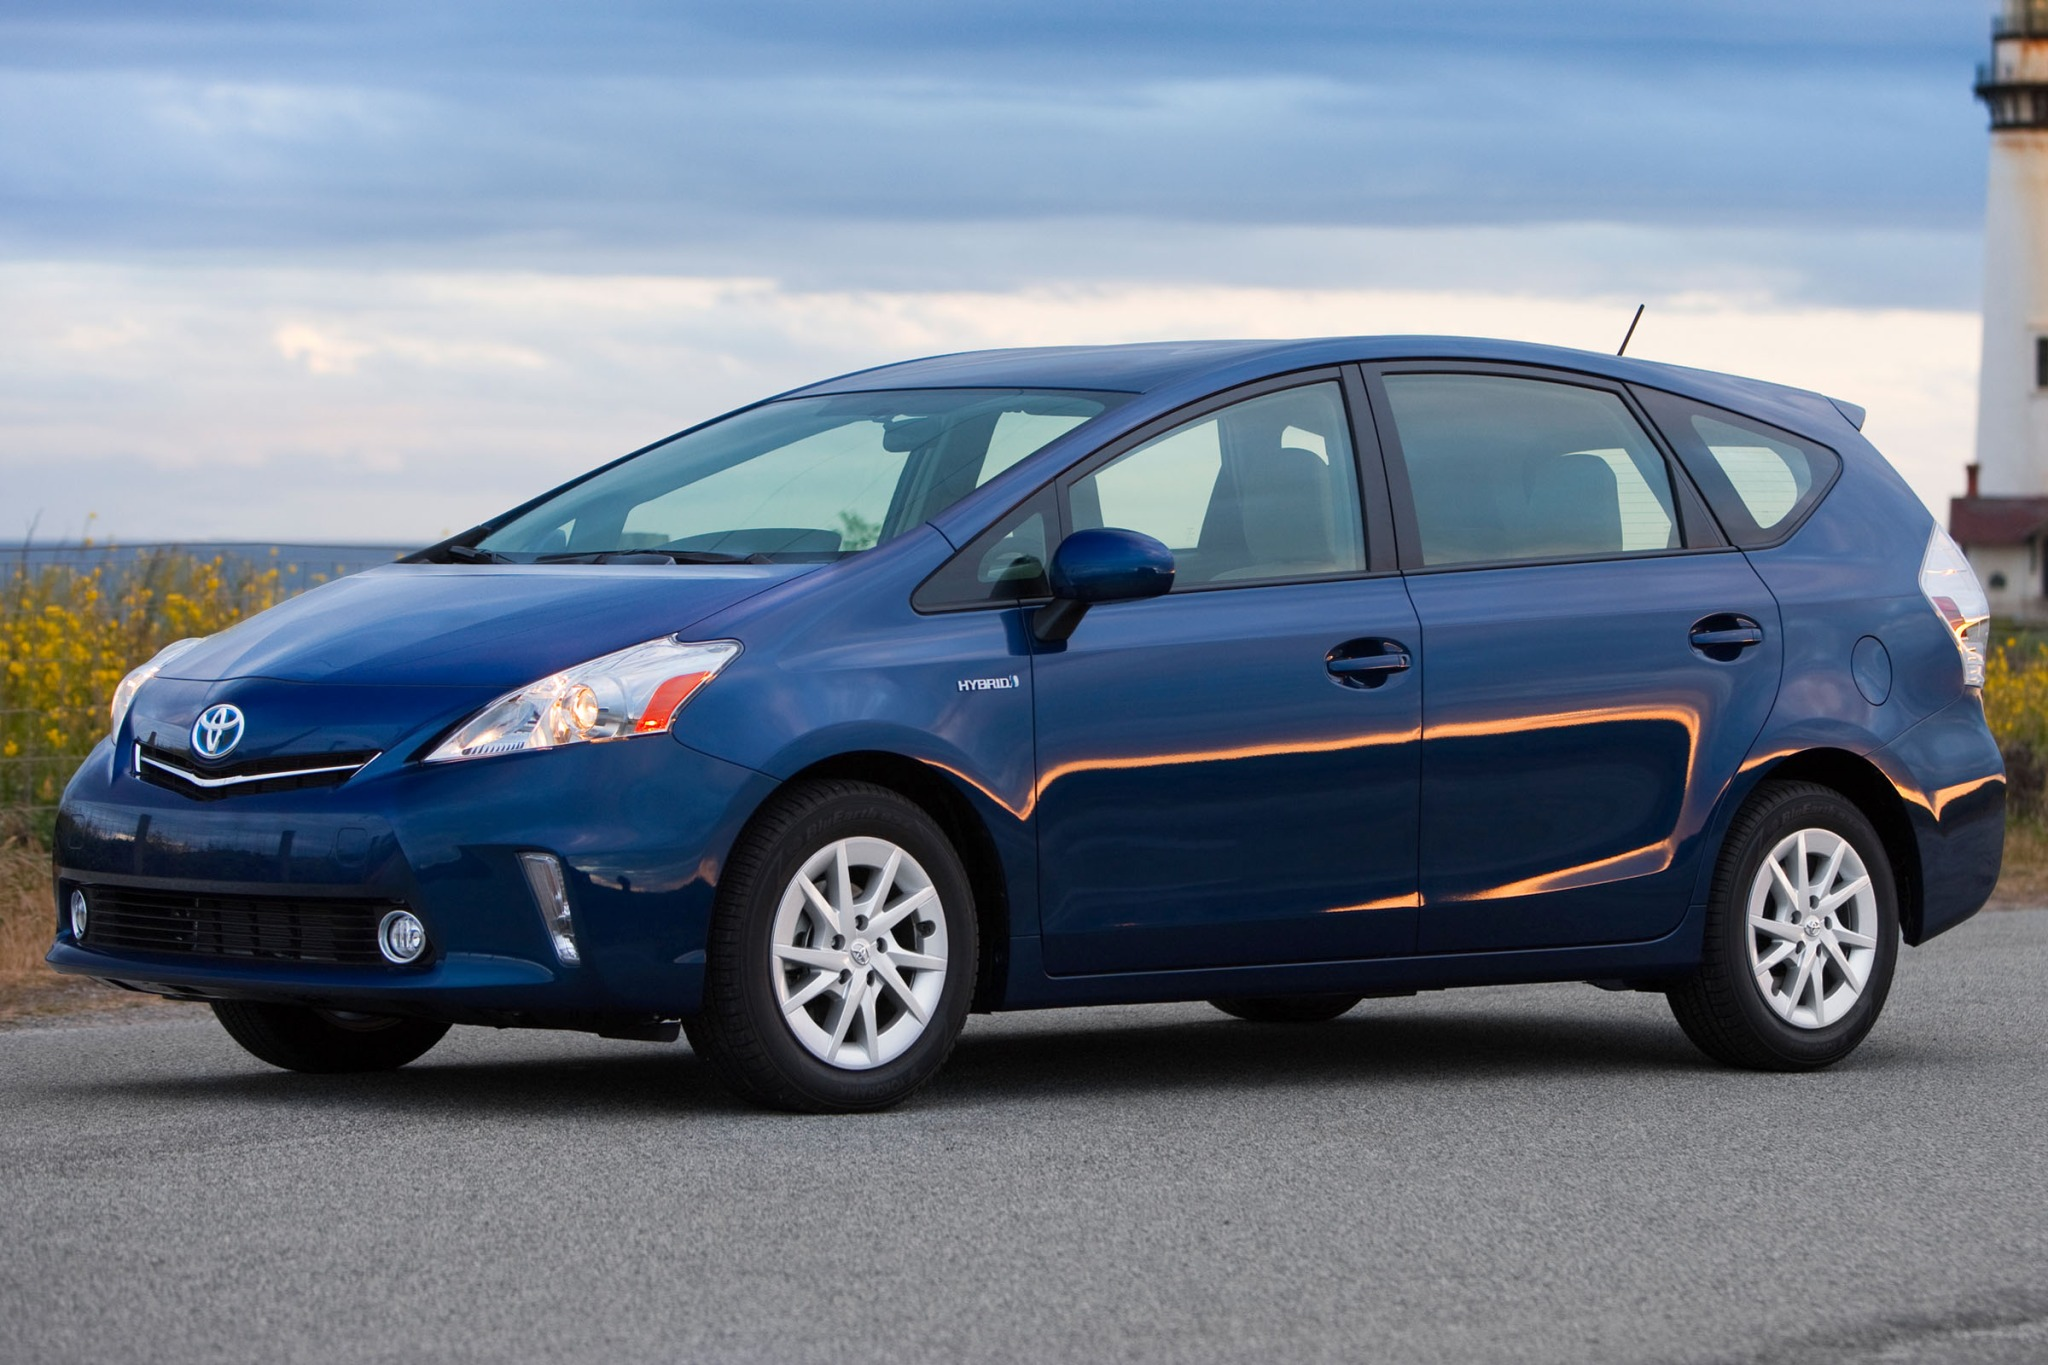 2013 toyota prius v reviews toyota prius v price photos html page contact us page about us. Black Bedroom Furniture Sets. Home Design Ideas